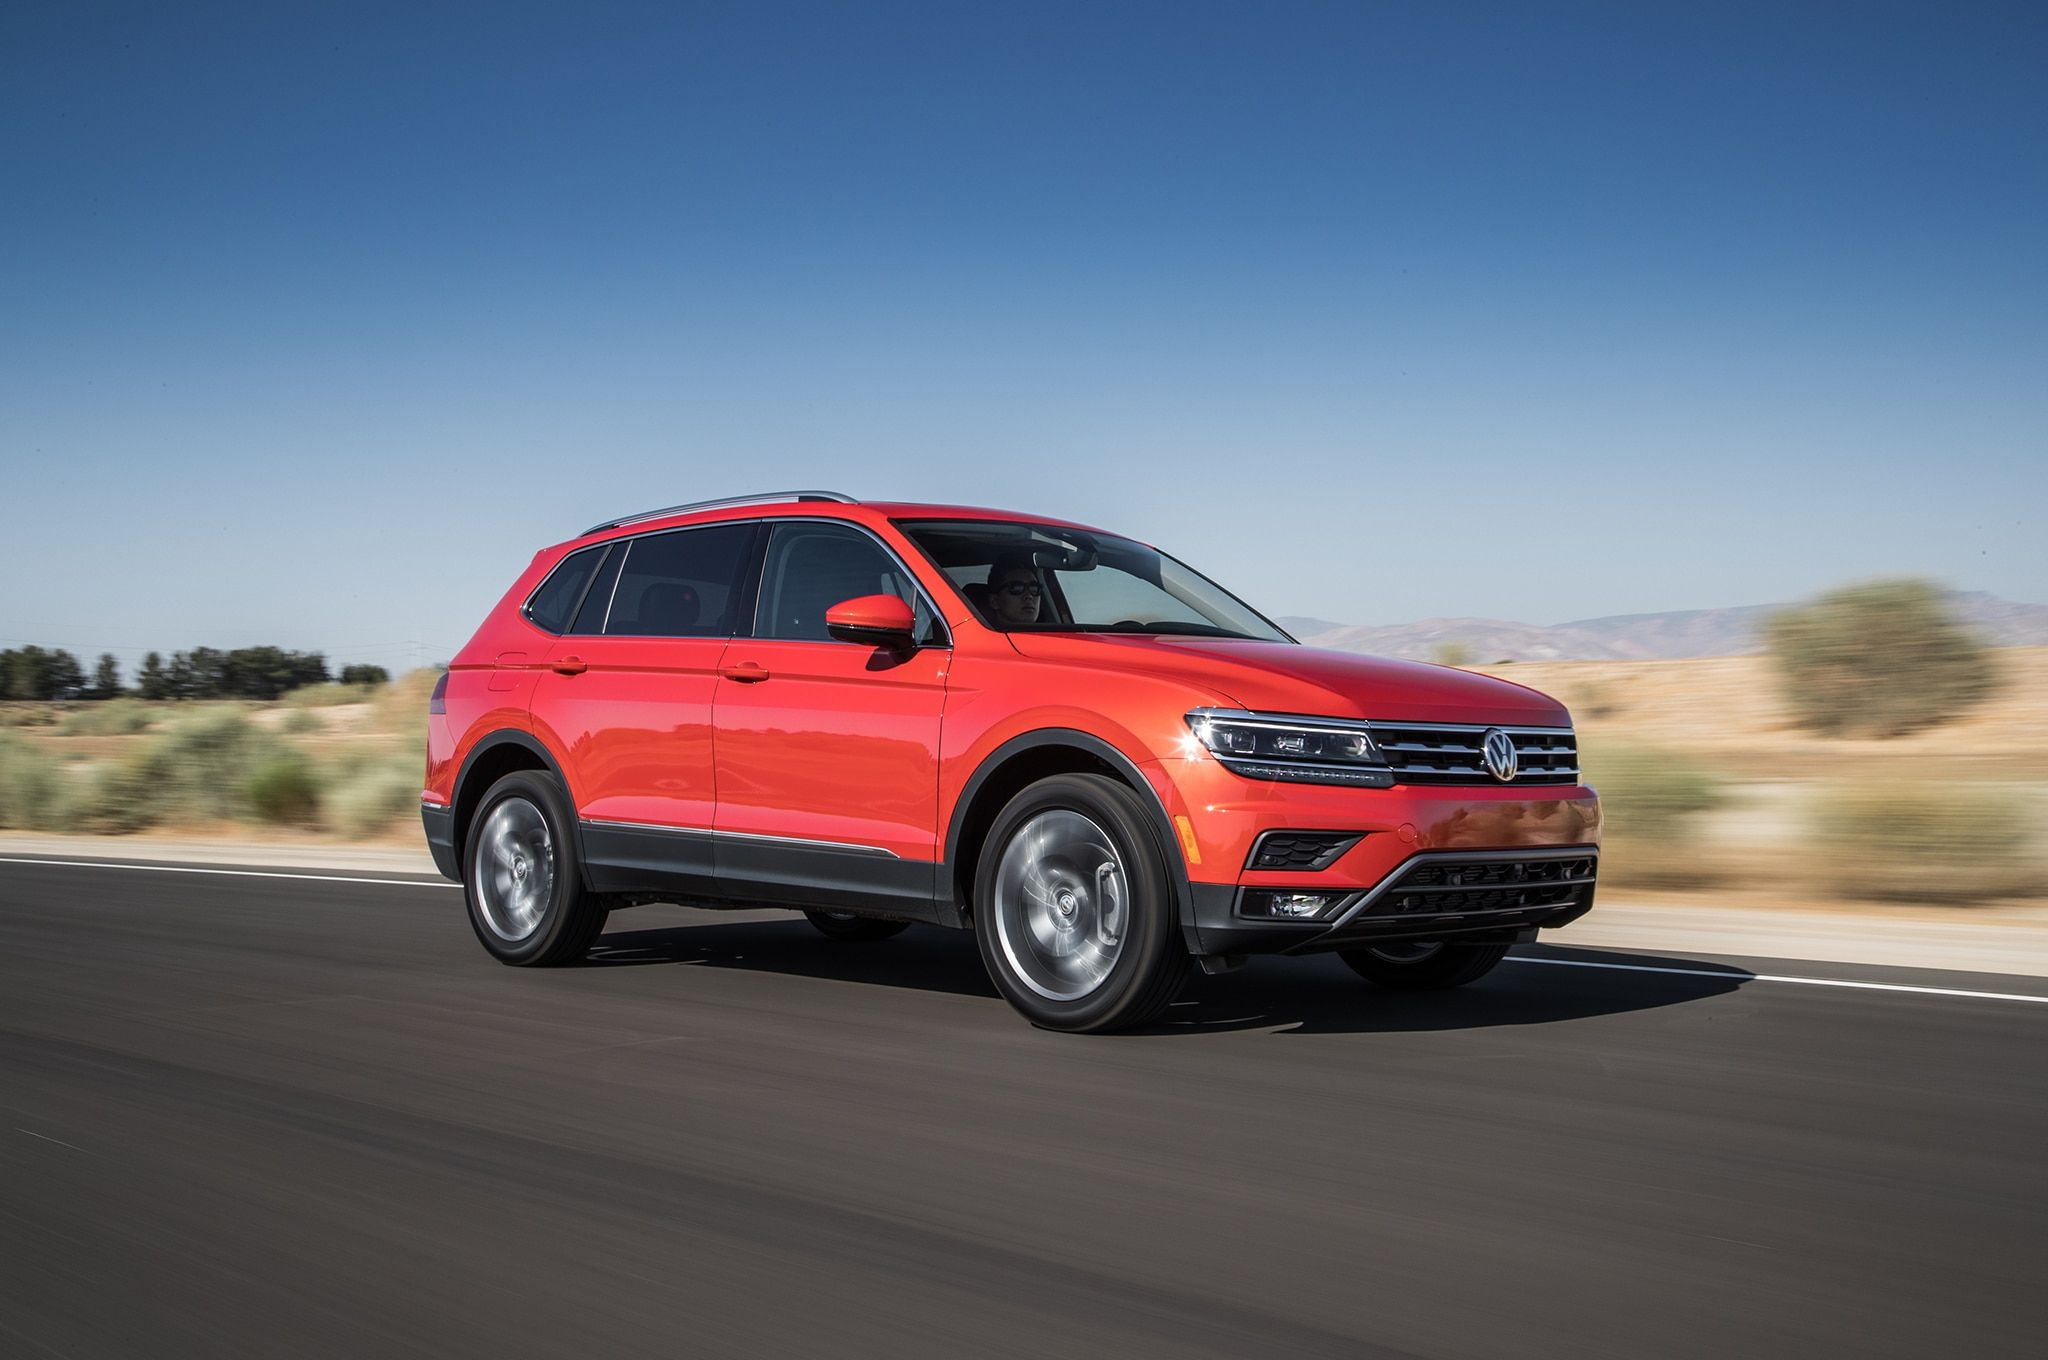 Volkswagen introduced the threerow Atlas crossover this